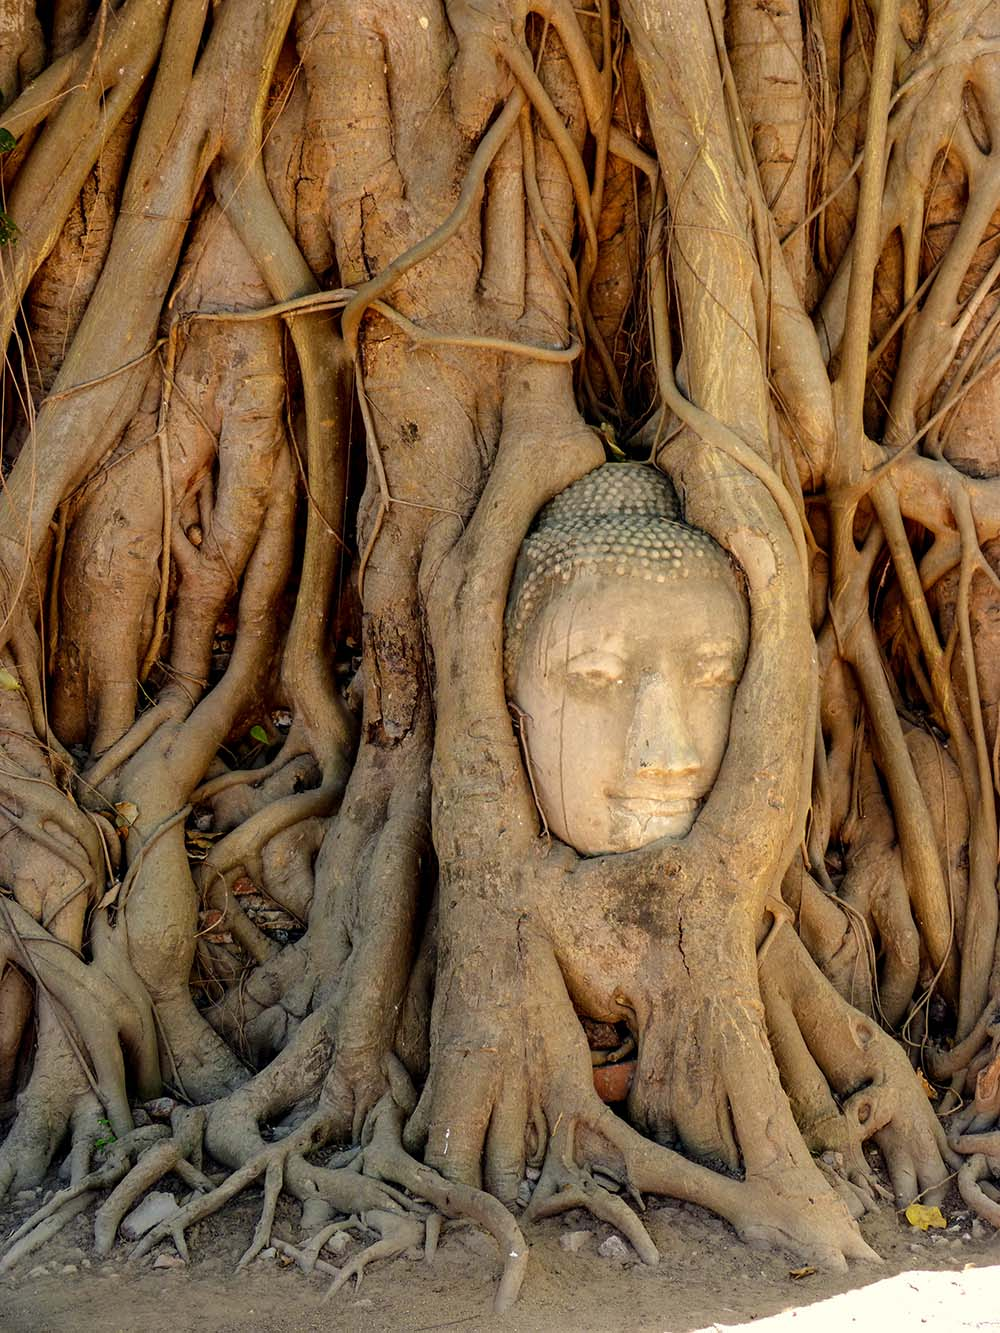 Buddha's iconic head grows into the roots of tropical trees